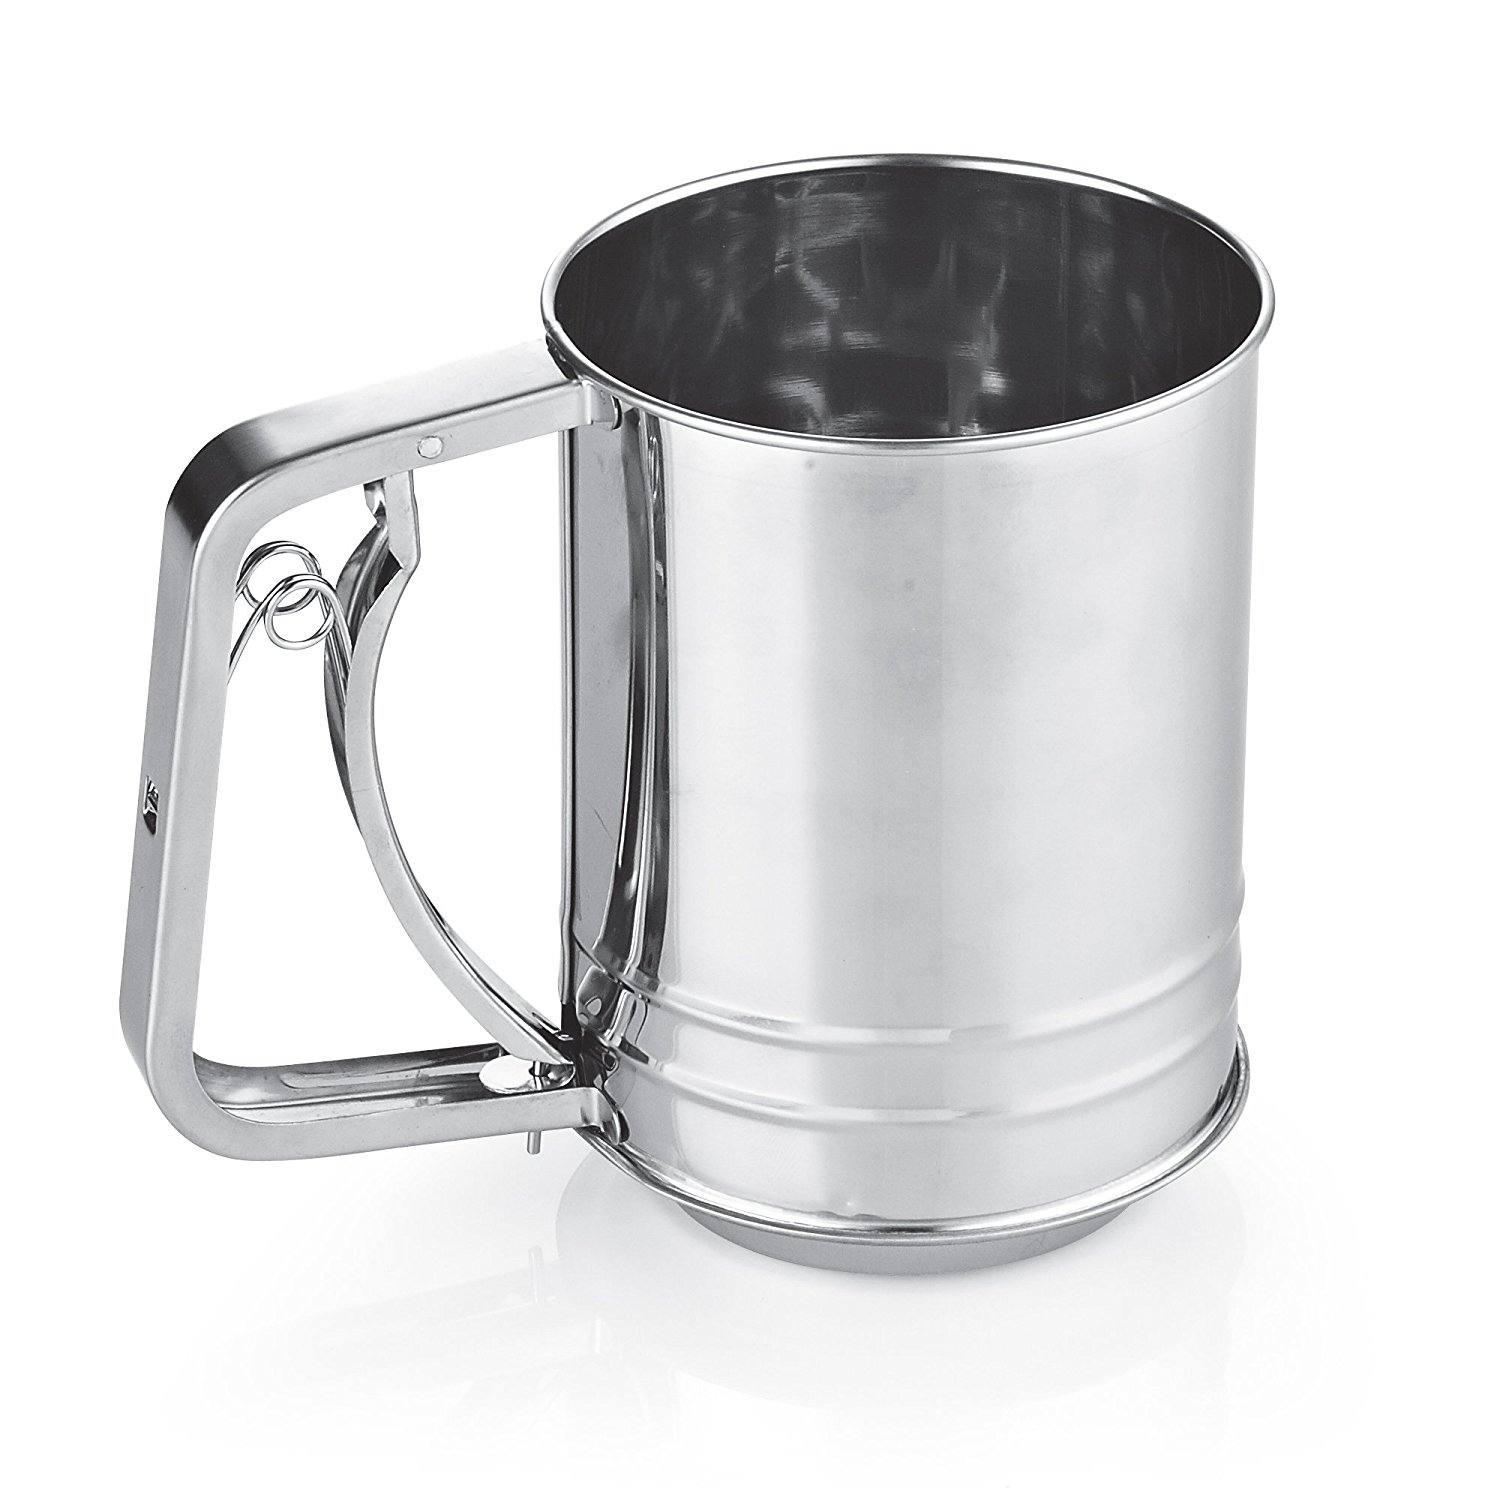 Cook N Home 3-Cup Stainless Steel Flour Sifter by Neway International Inc